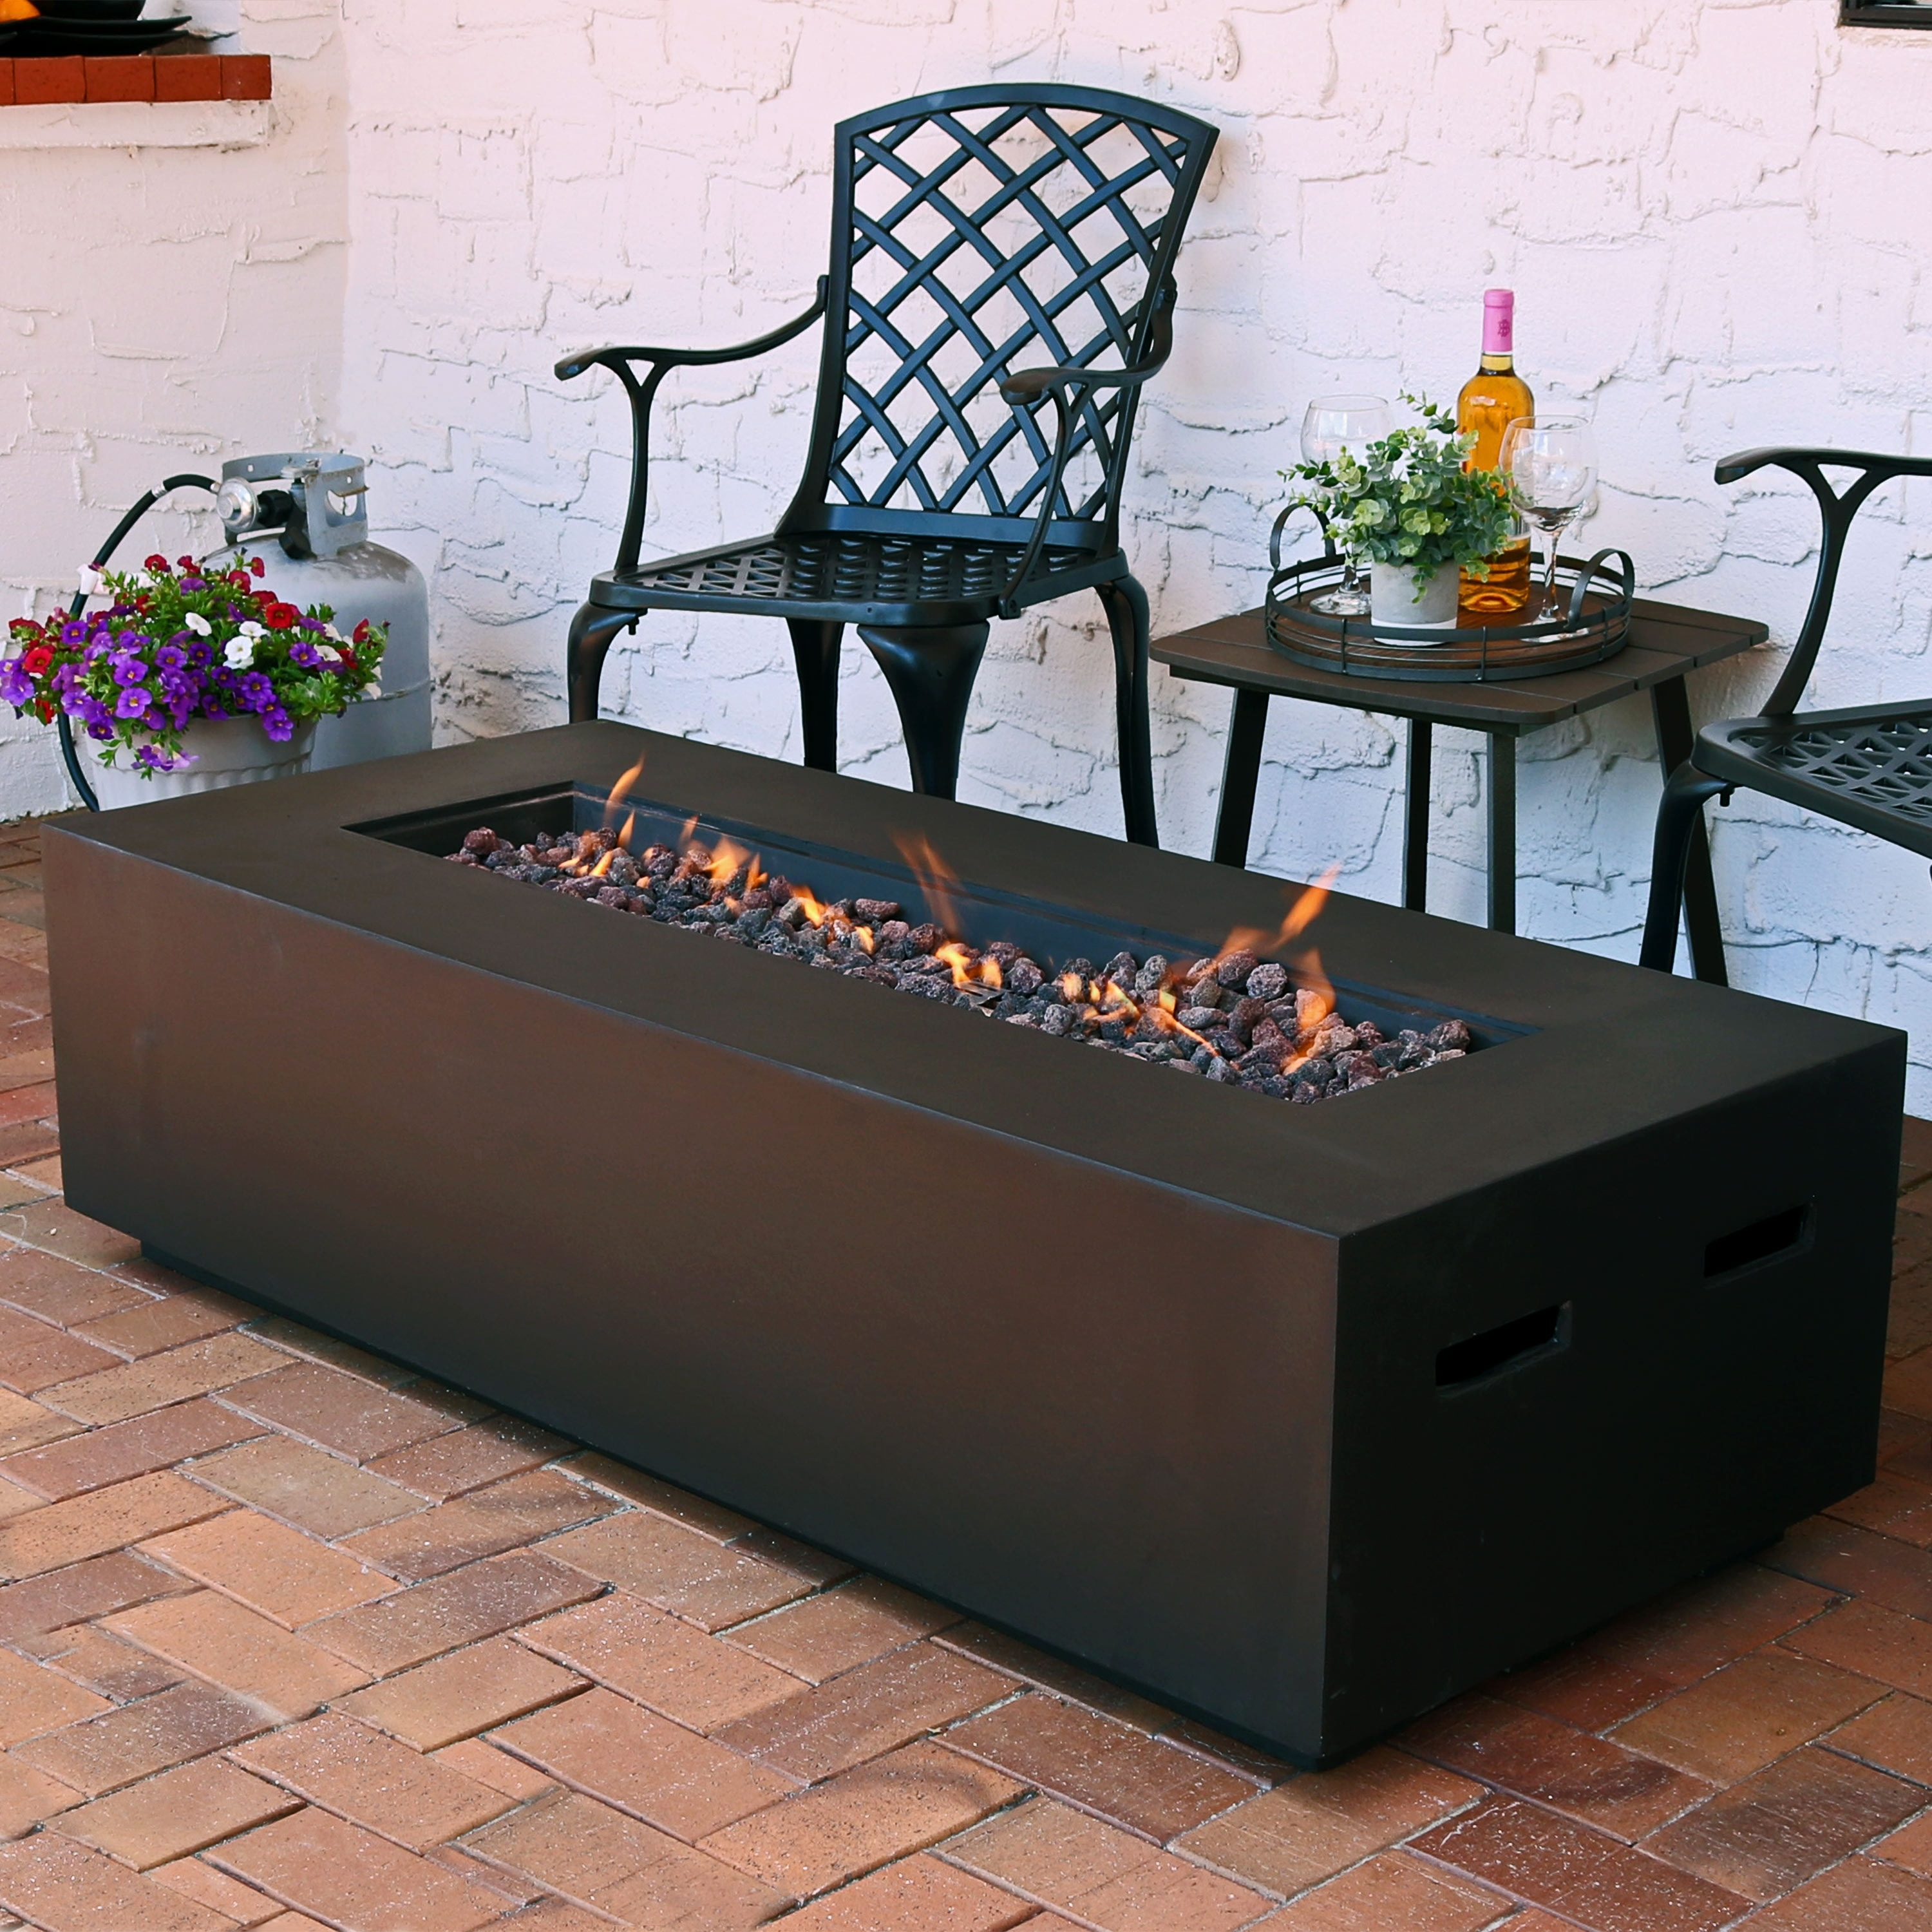 Sunnydaze Brown Lp Gas Modern Fire Pit Coffee Table With Lava Rocks 56 Inch